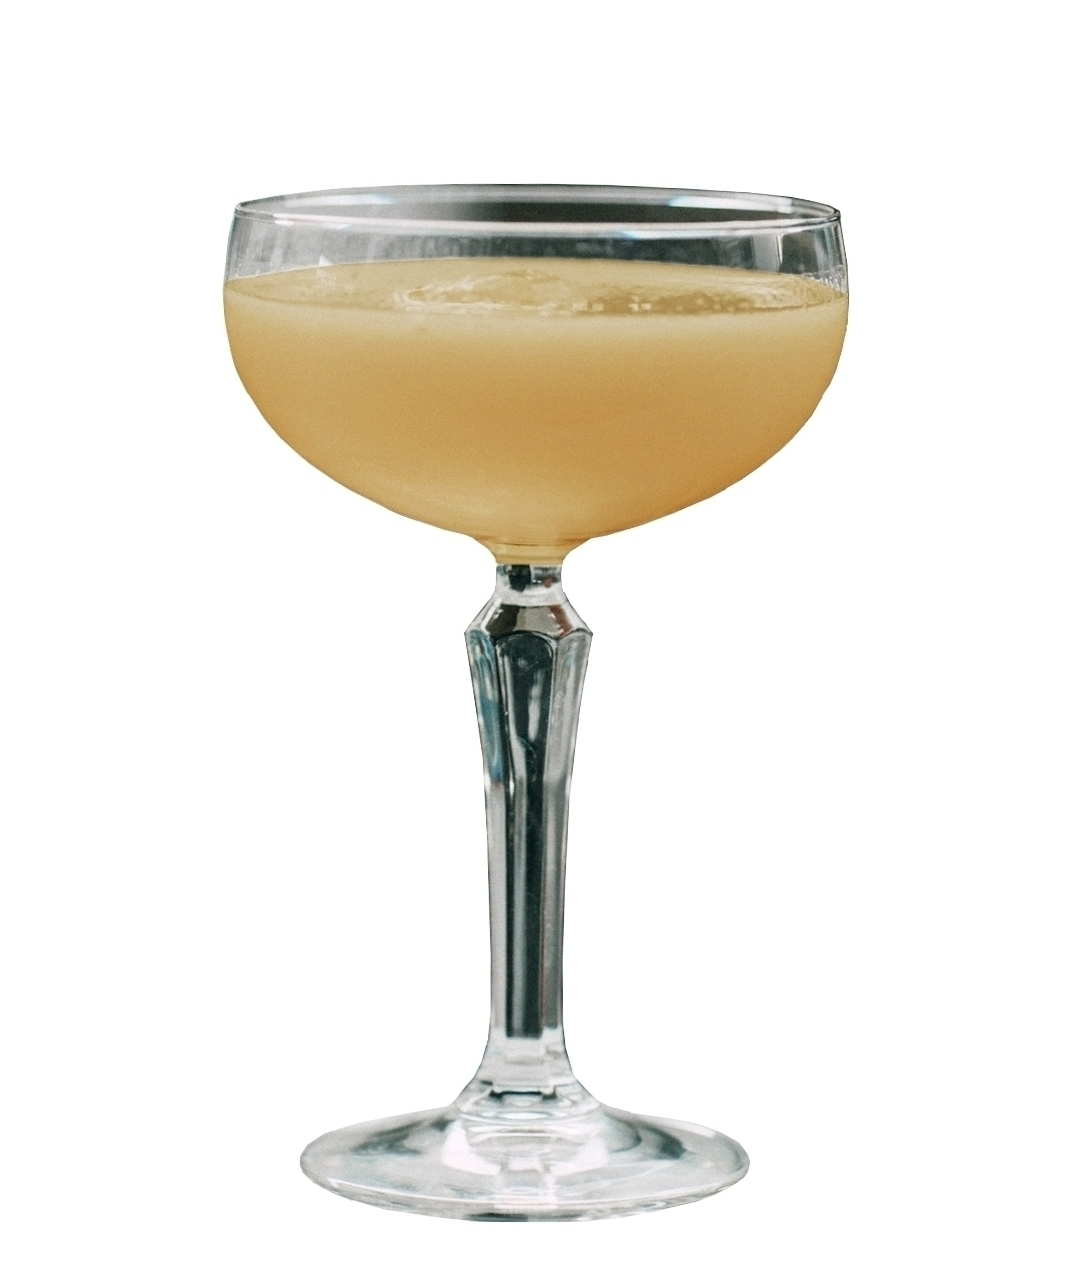 VALHALLA  60ml Norseman Aquavit 25ml Fresh Lime Juice 20ml Norseman Olympia Liqueur 3ml Angostura Bitters 5ml Rich Simple Syrup*  Shake ingredients and strain into a cocktail glass.  *Rich Simple Syrup:simmer two parts sugar to one part water until clear. Be careful not to simmer too long or it will crystallize.